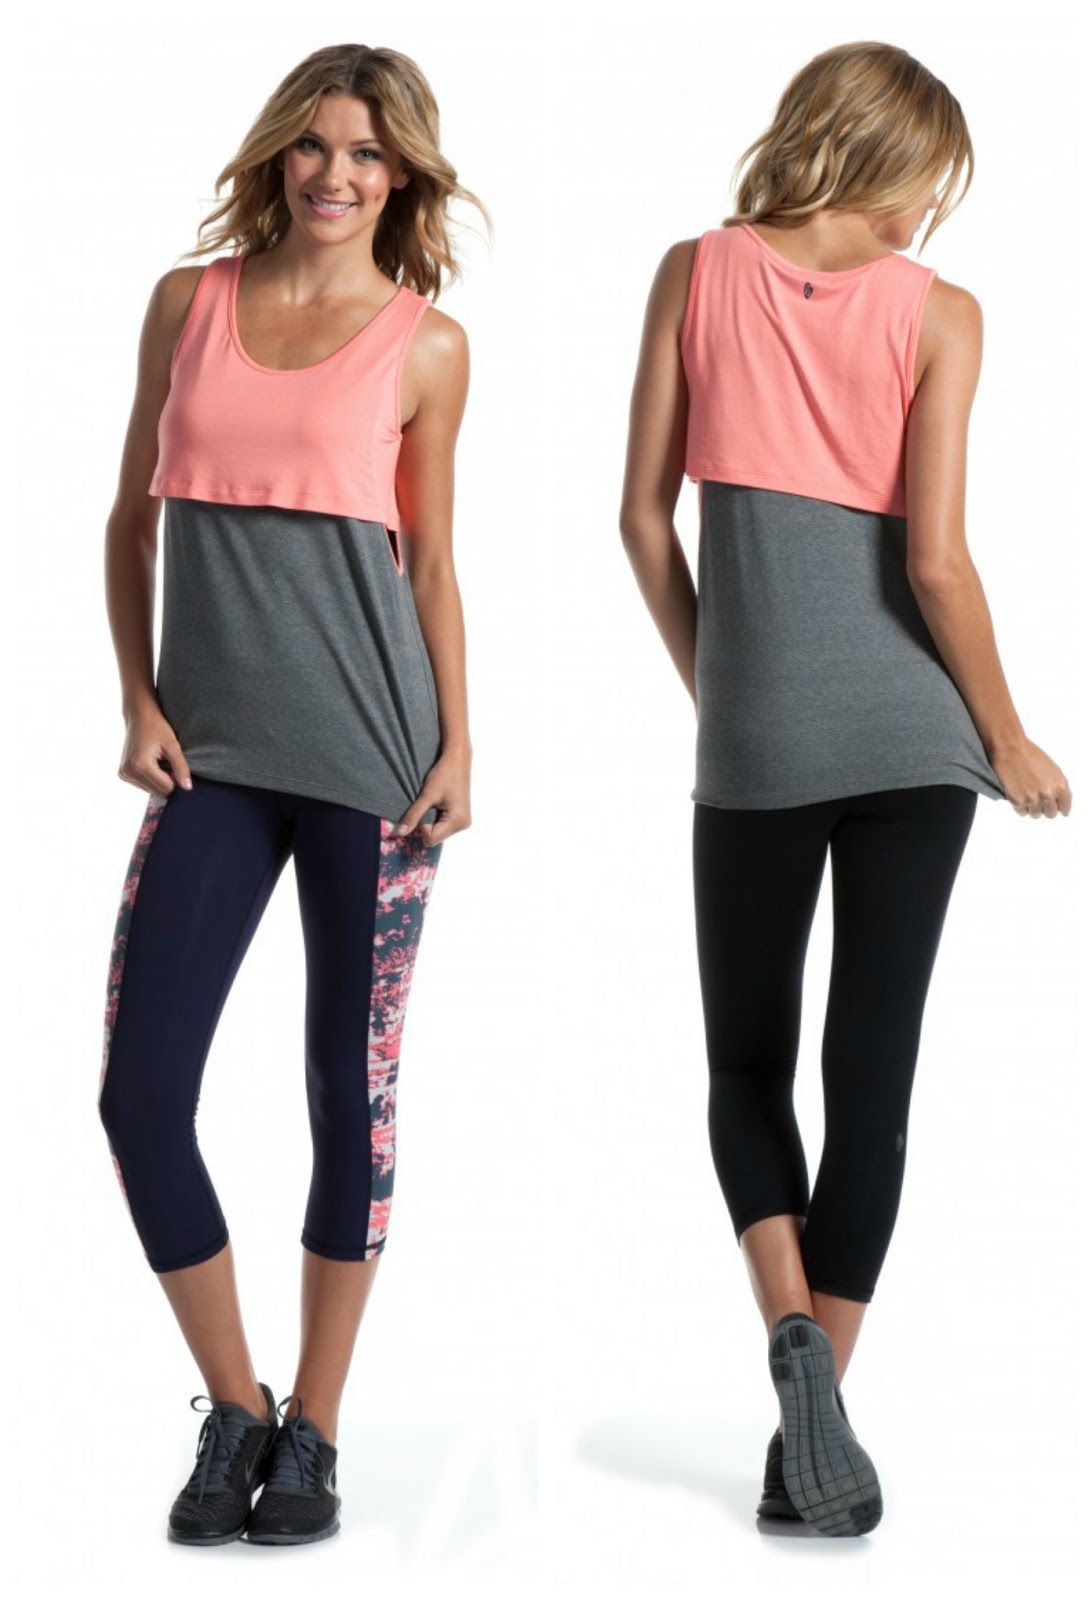 Shop Target for Activewear you will love at great low prices. Spend $35+ or use your REDcard & get free 2-day shipping on most items or same-day pick-up in store.